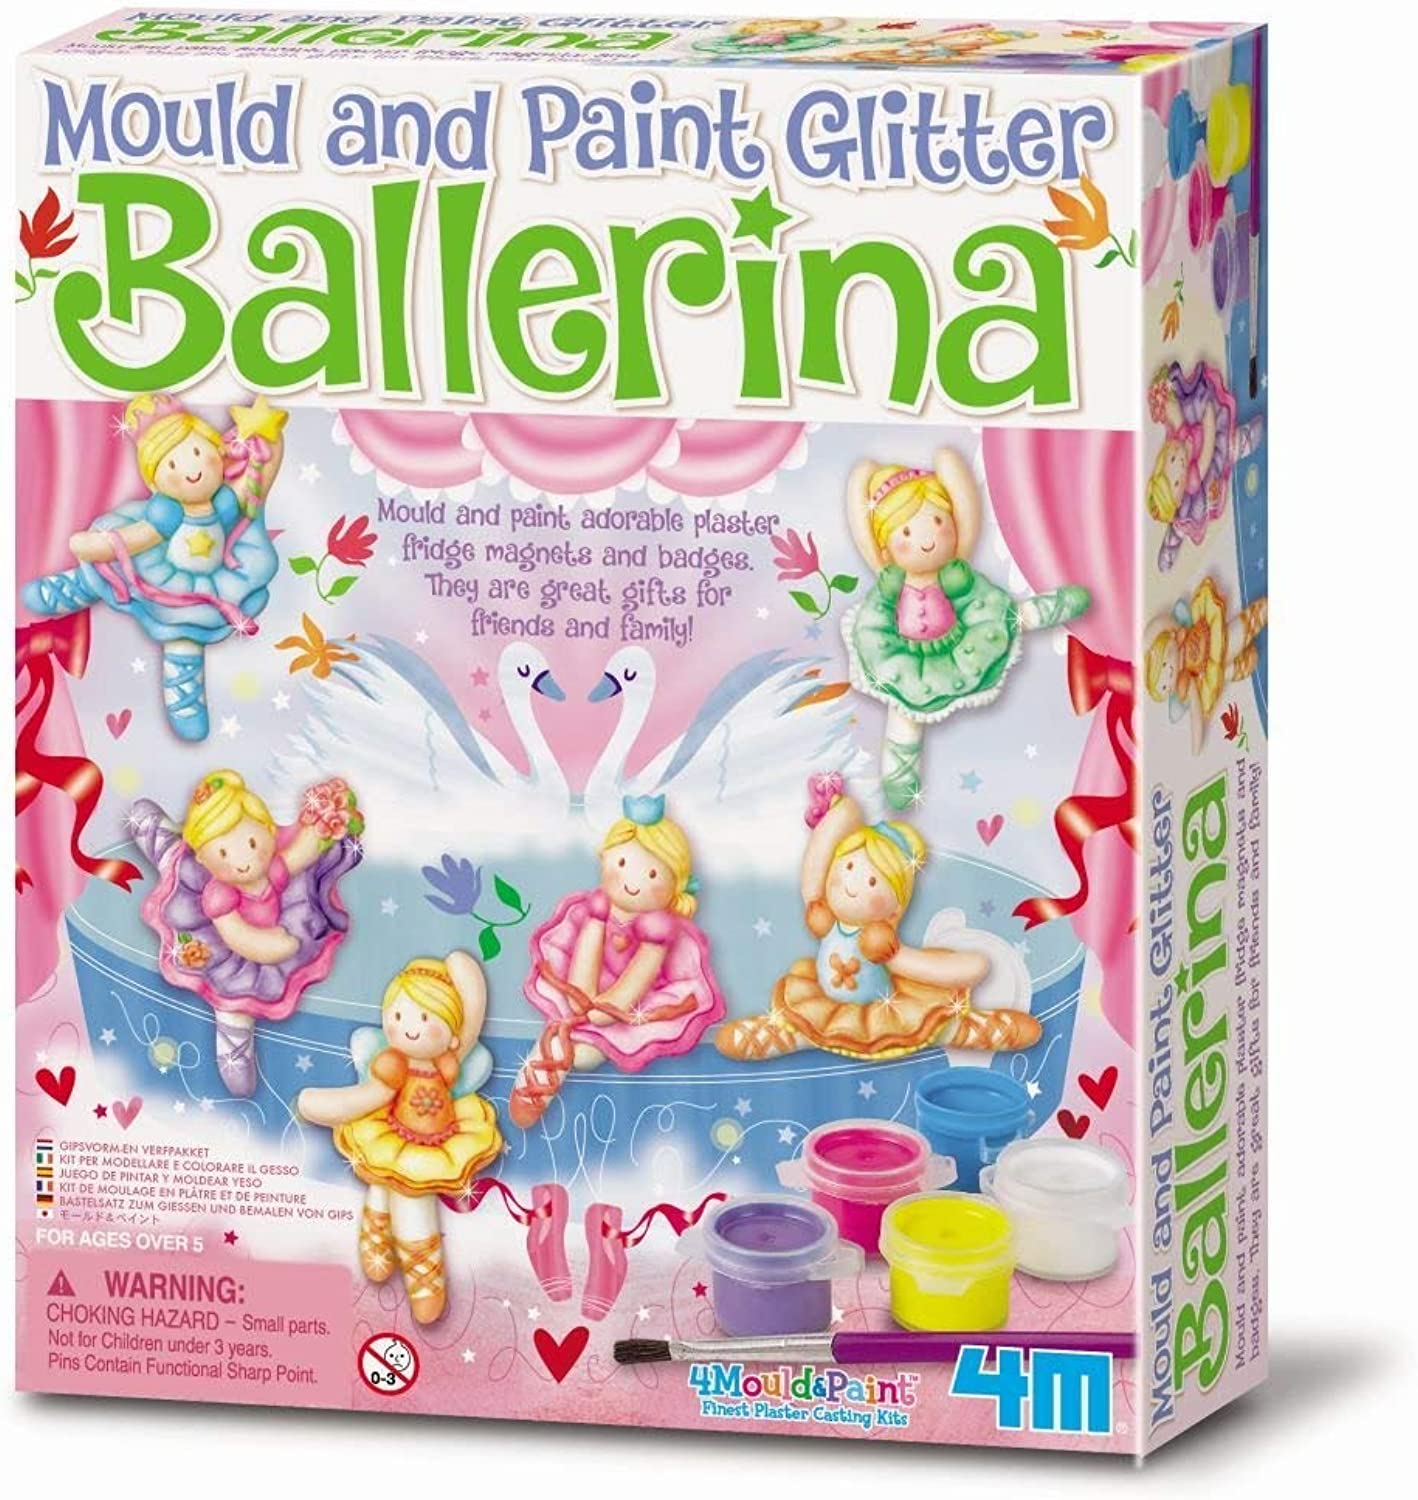 3xGlitter Ballerina Mould and Paint